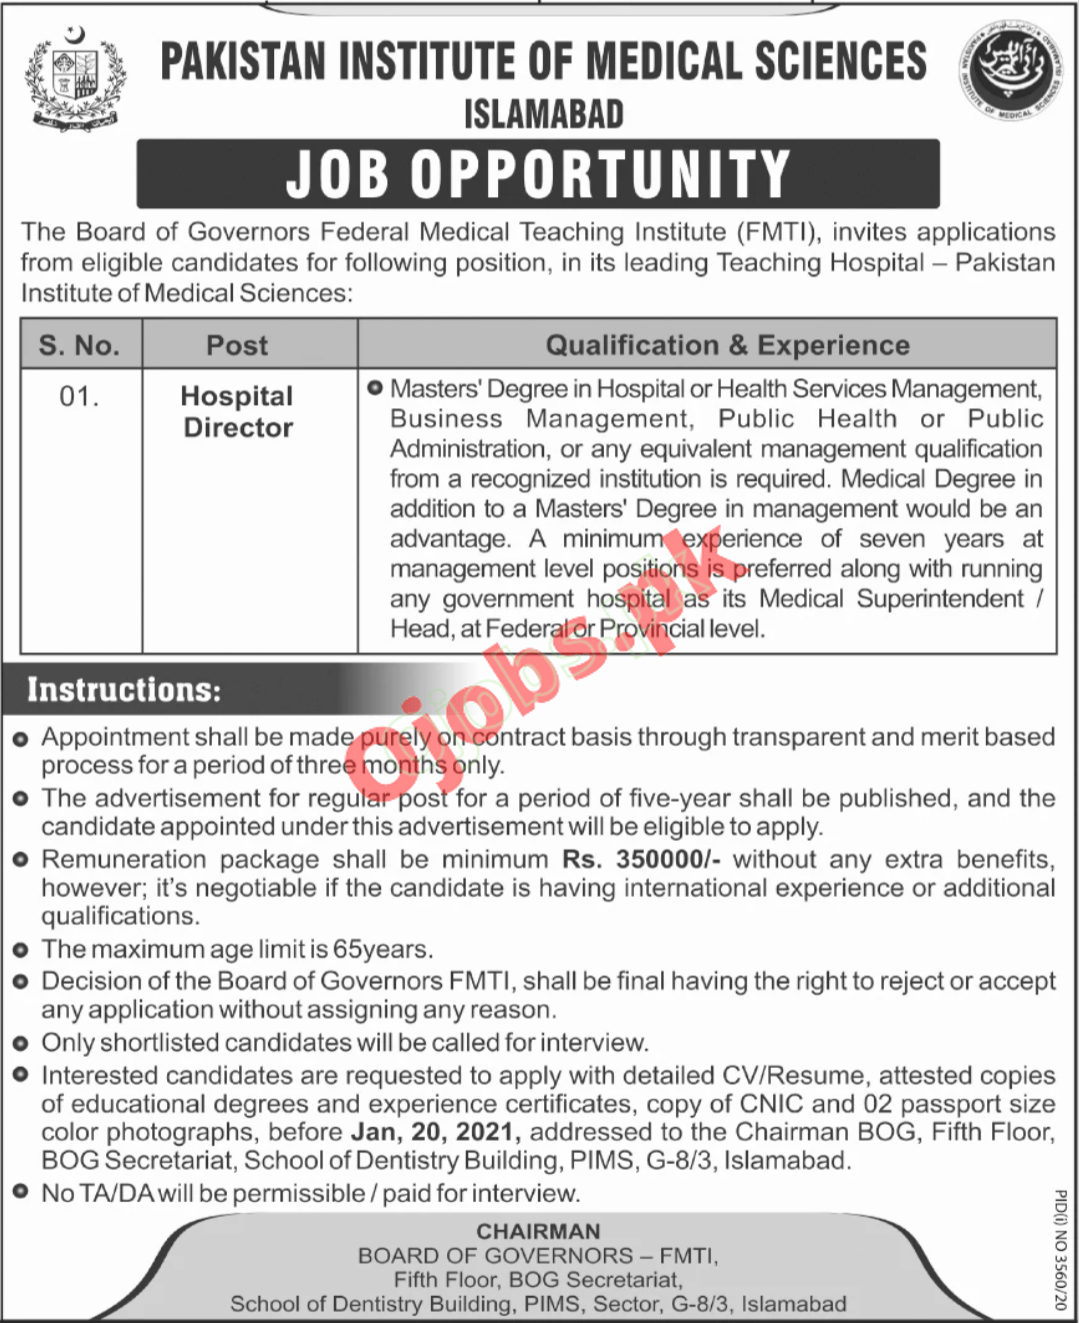 Pakistan Institute of Medical Sciences PIMS Jobs in Islamabad For Hospital Director 2021